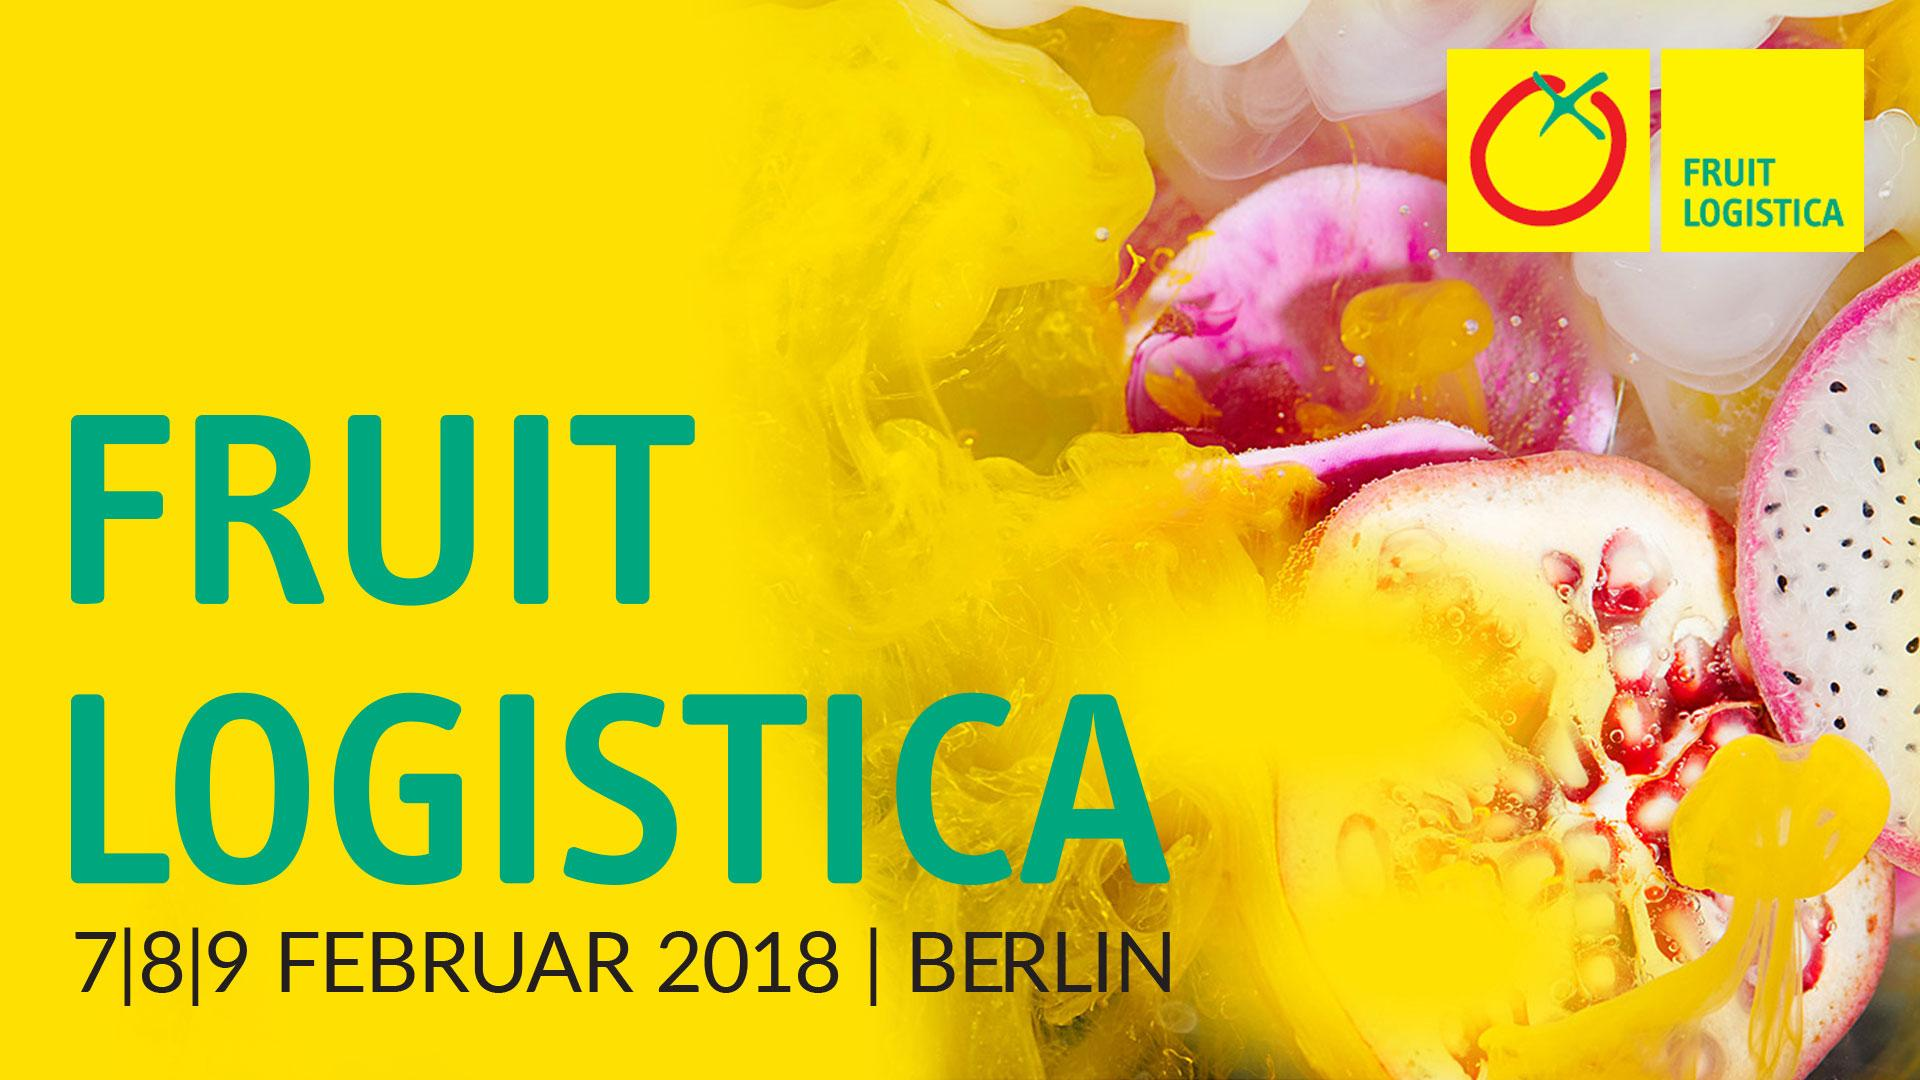 Berlin Fruit Logistica 2018 - ECUAFIELDS® will participate in the Fruit Logistica held in Berlin on 2018 from the 7-9 February 2018.3.239 exhibitors and 78.000 trade visitors attend FRUIT LOGISTICA every year to realise their full business potential within the international fresh produce trade – and to write their own success story!